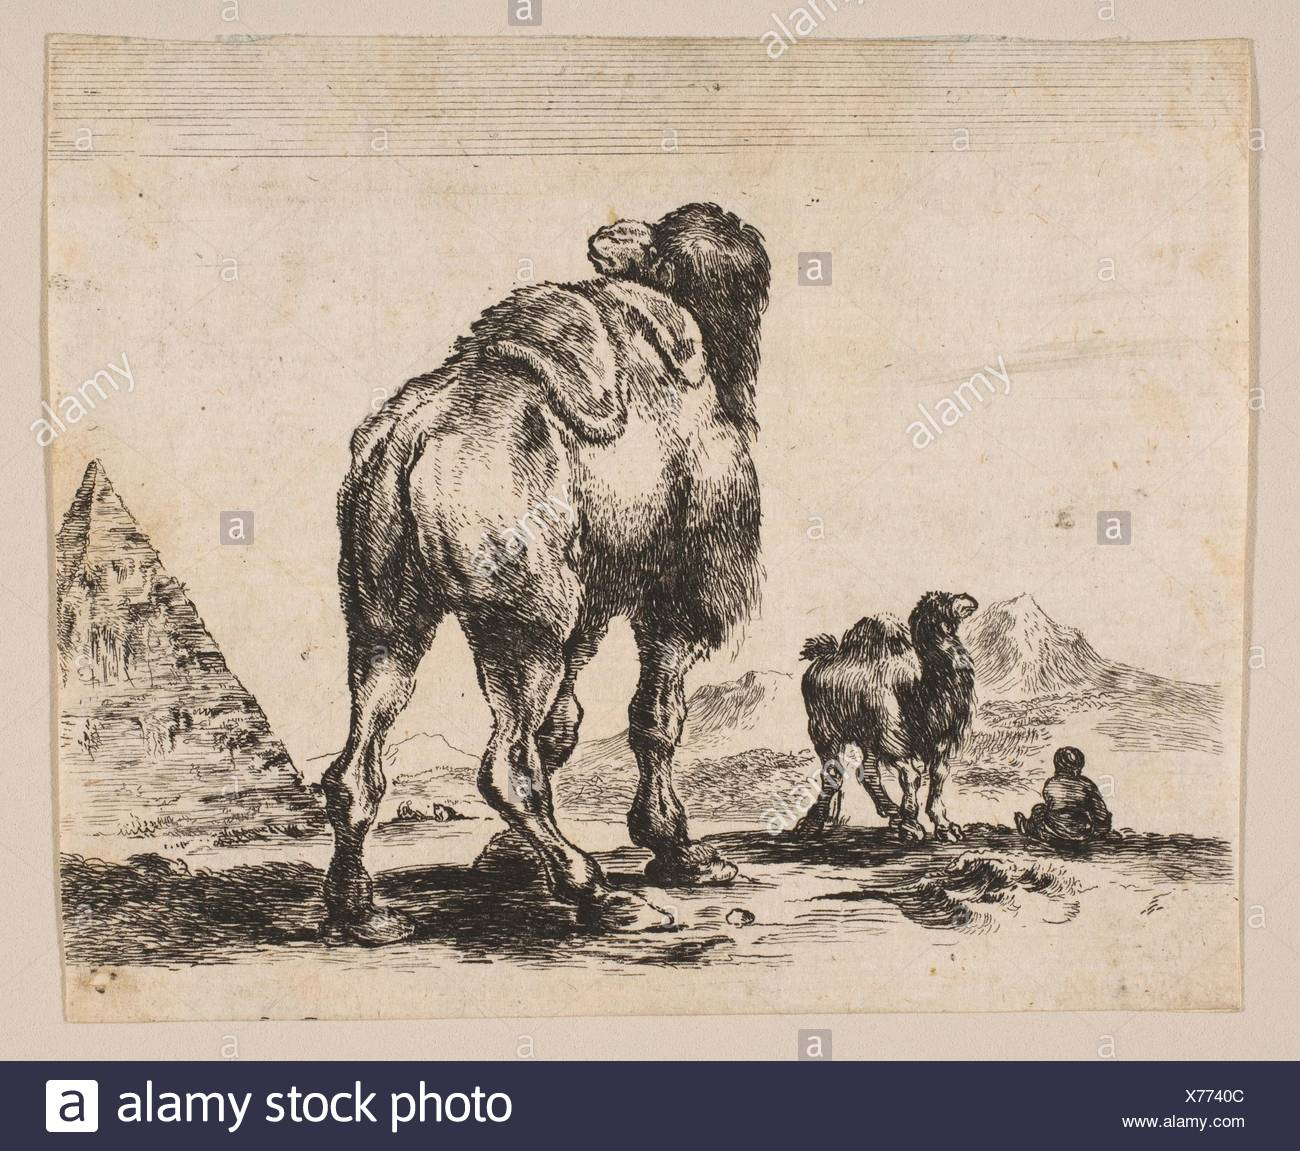 Plate 18: camel viewed from behind with pyramid at right, from 'Various animals' (Diversi animali). Series/Portfolio: 'Various animals' (Diversi - Stock Image